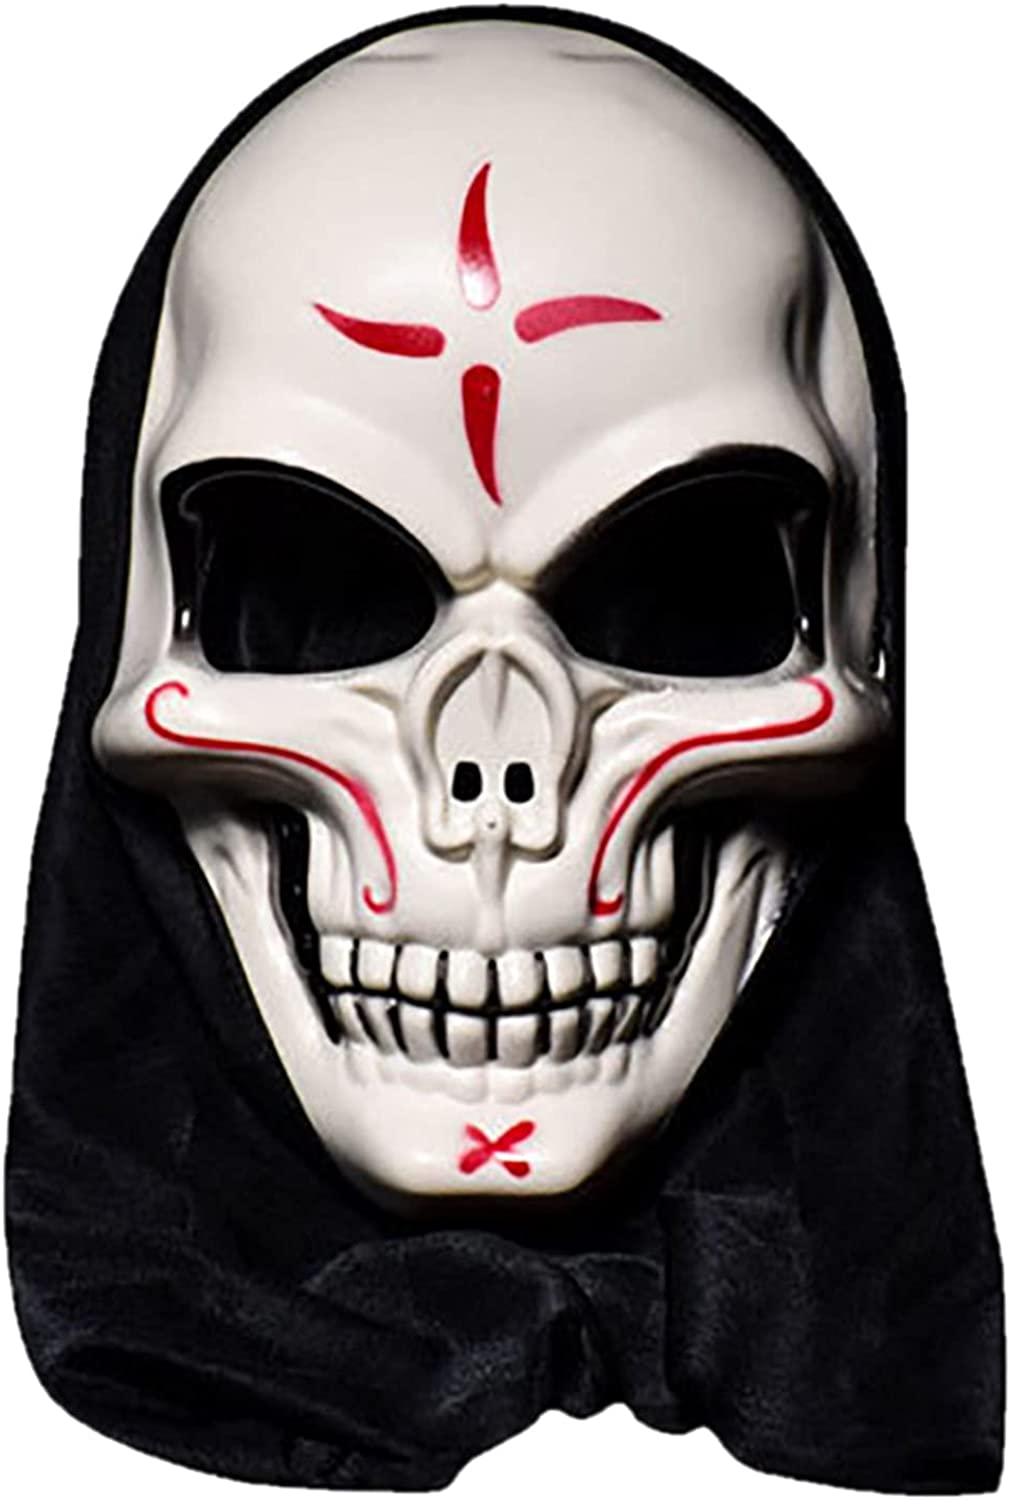 Halloween Horror Max 70% OFF Mask Cosplay Bar Night Outlet sale feature P Show Theme Performance